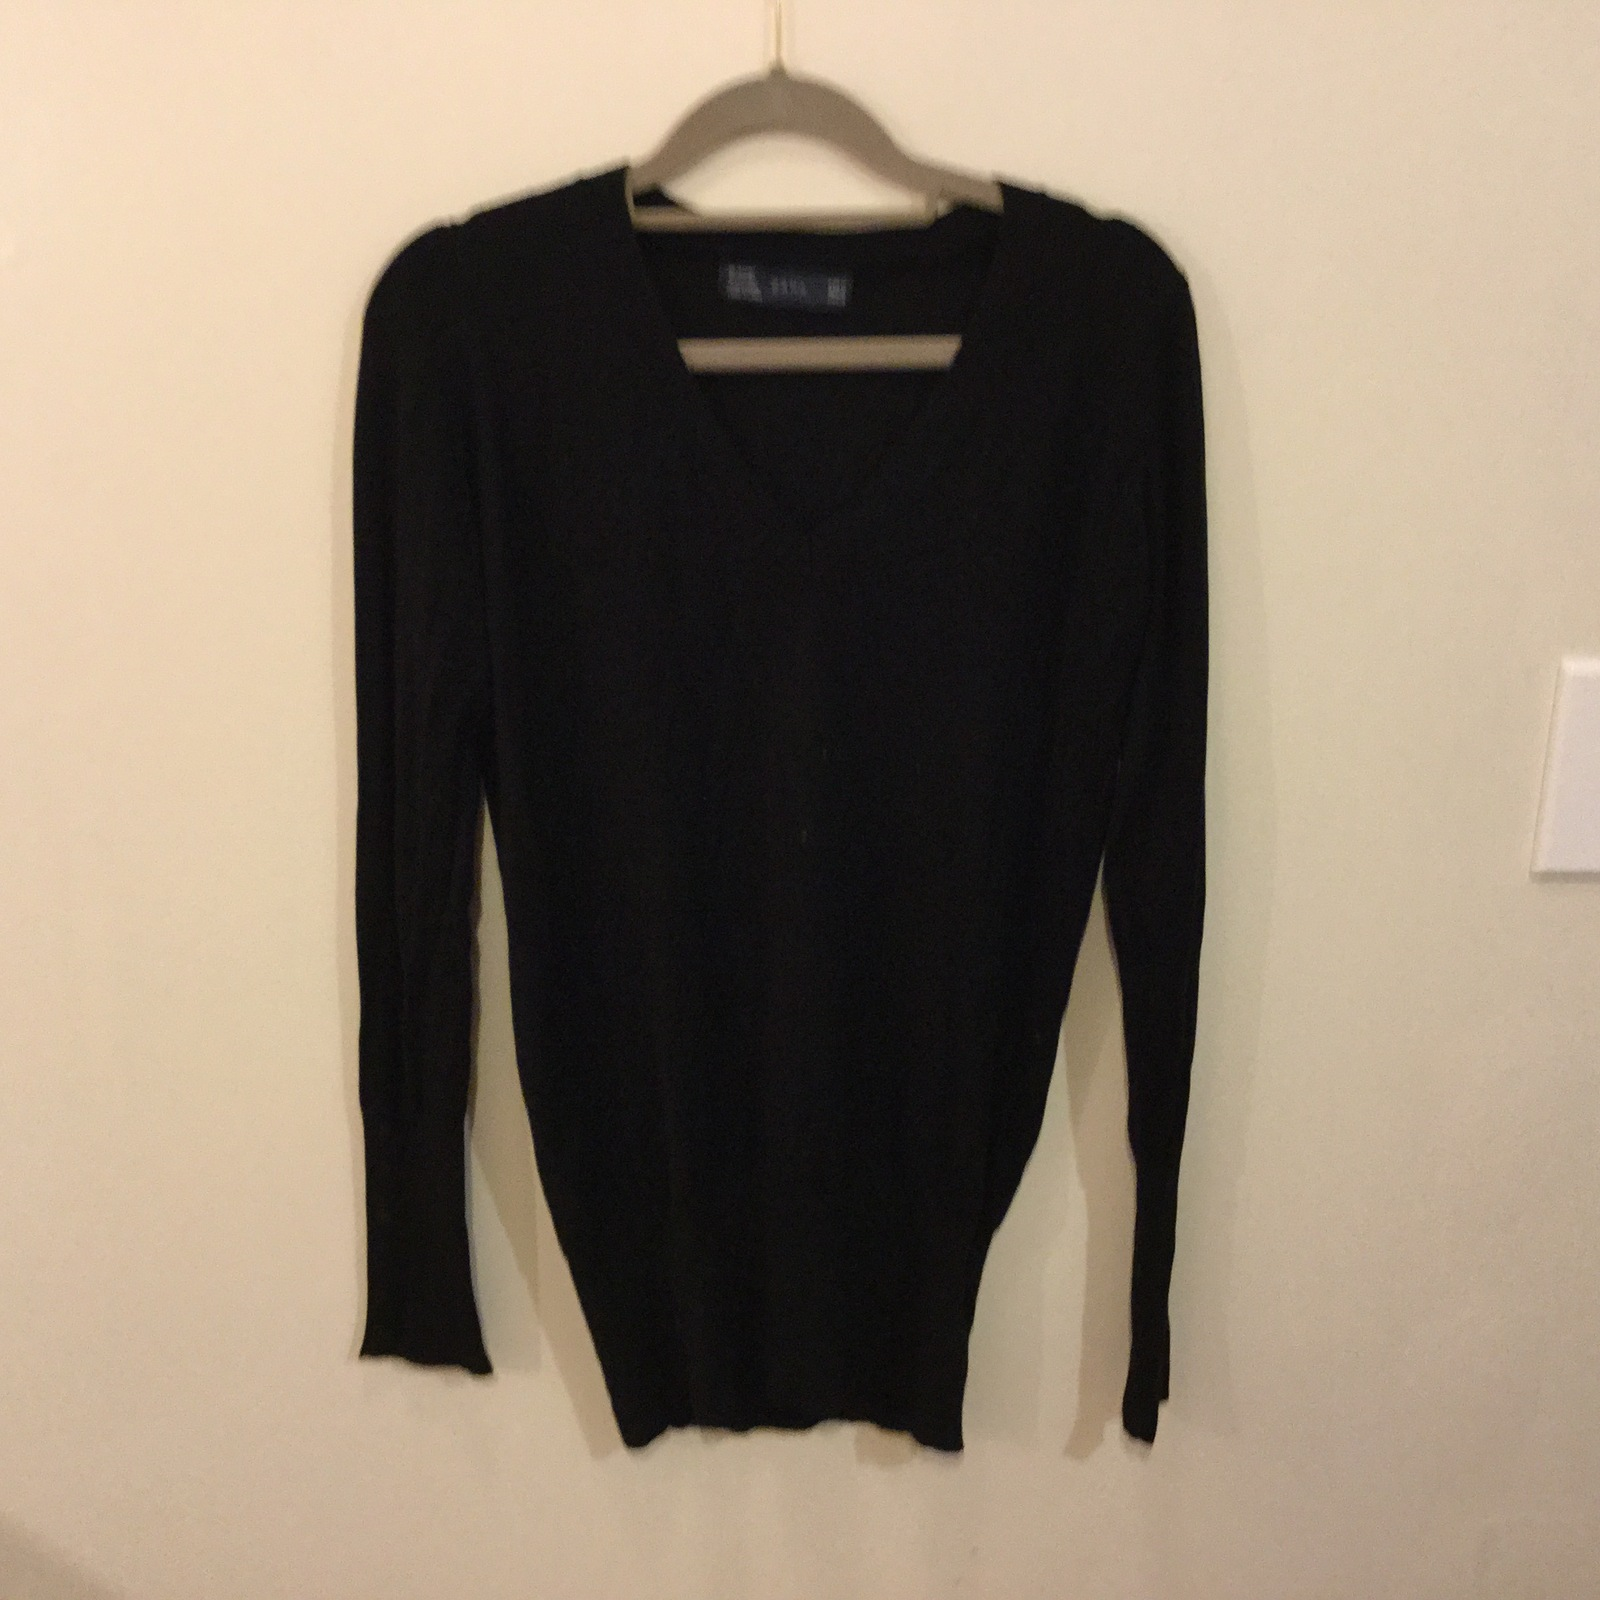 Zara Black V-Neck Rayon blend Ling Sweater Cardigan, size M